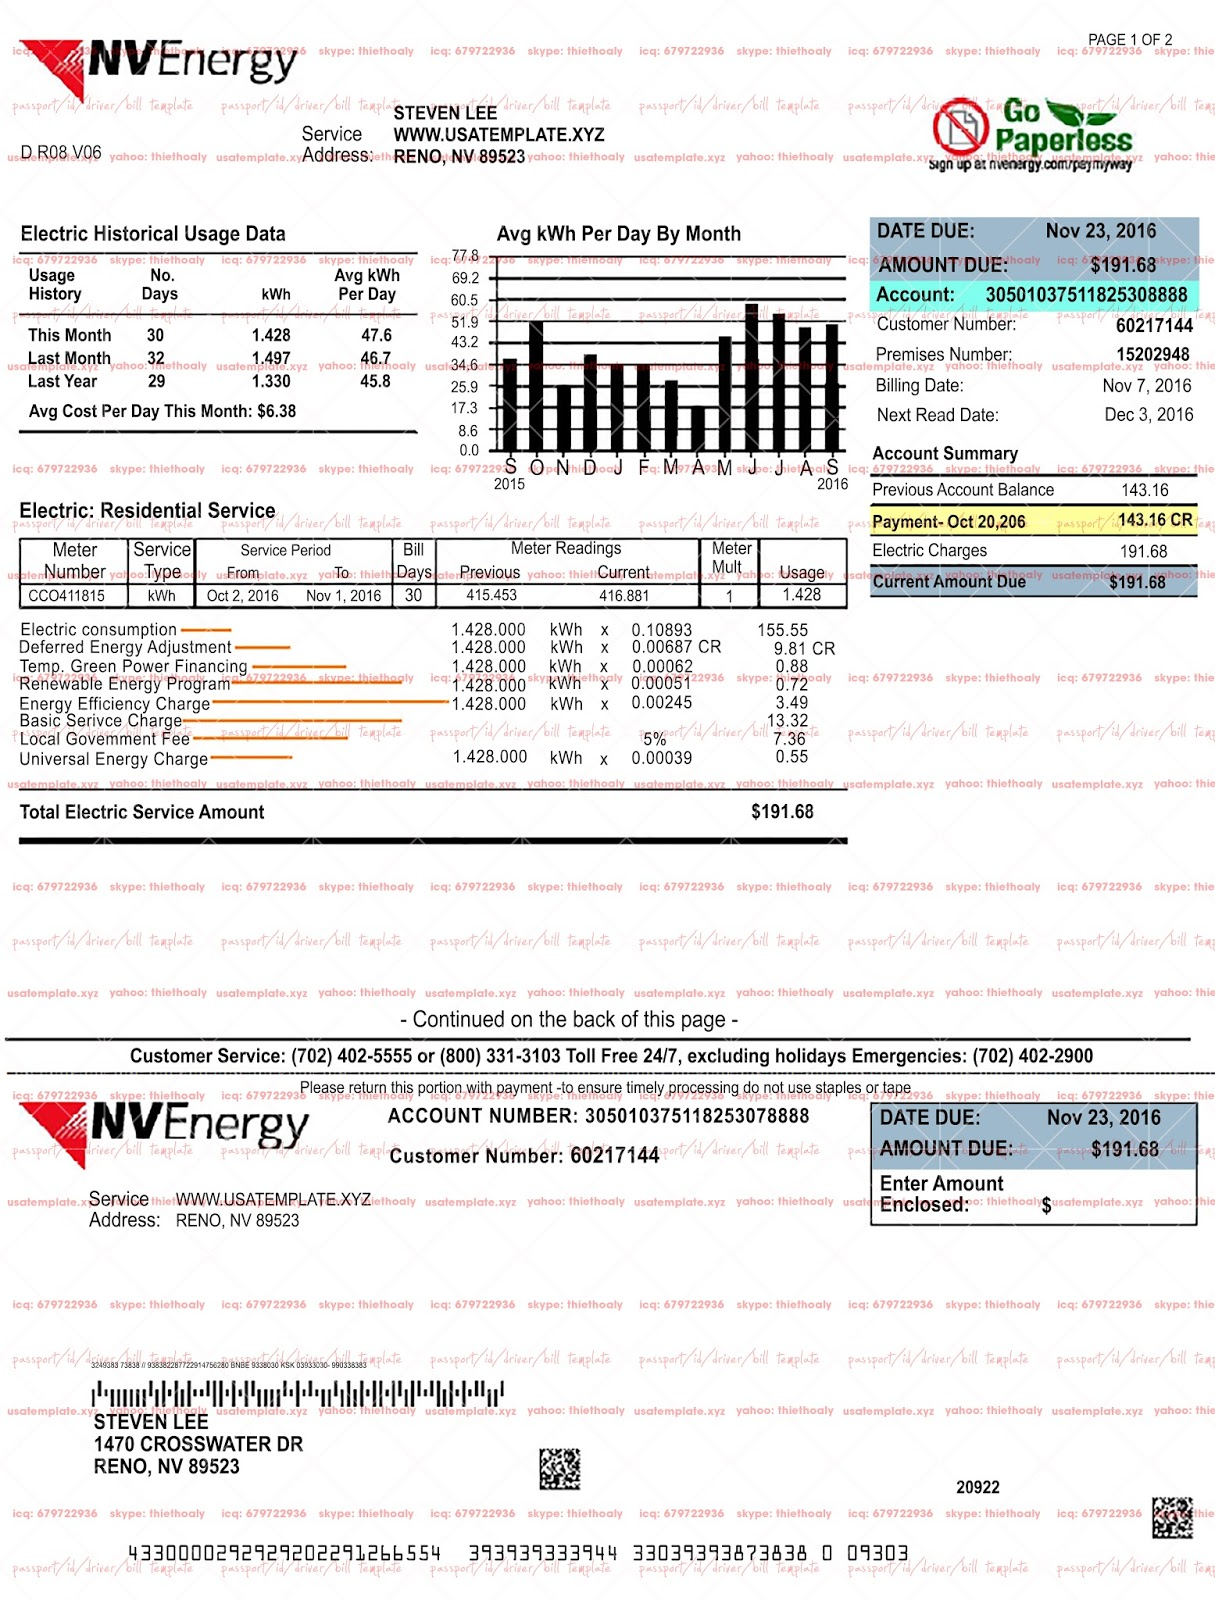 Neveda electricity psd photoshop template usa utility bill psd on this psd template you can put any name address and make your personalized fully editable neveda electricity psd template photoshop high quality pronofoot35fo Images